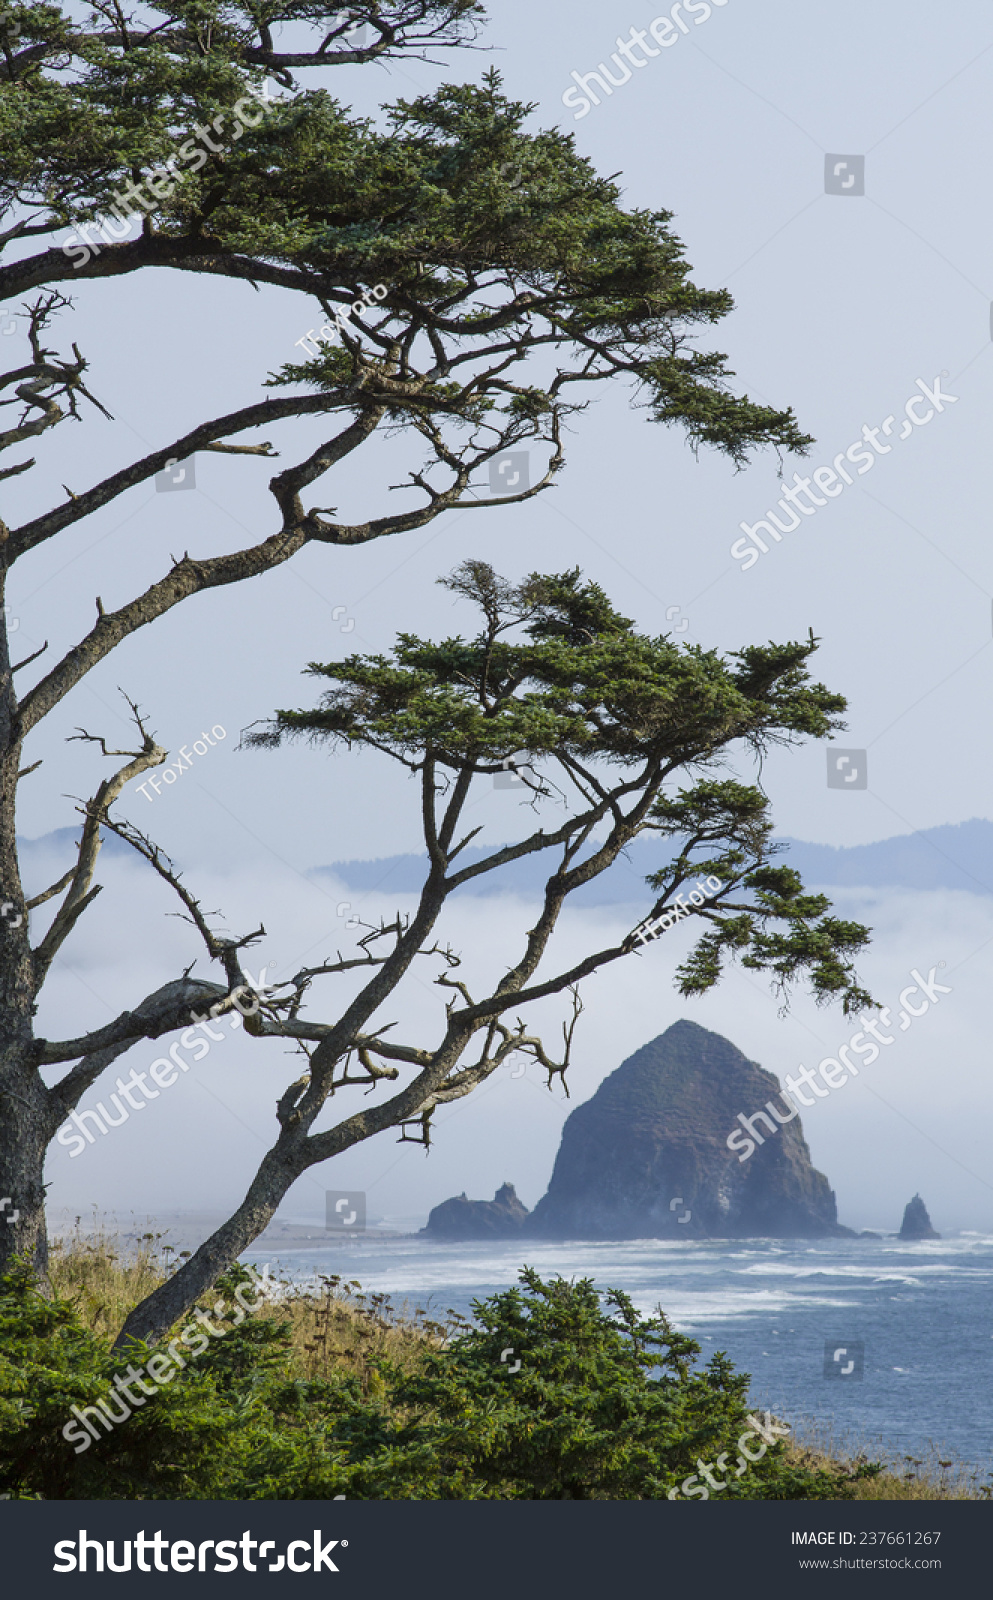 coastal sitka spruce - photo #23